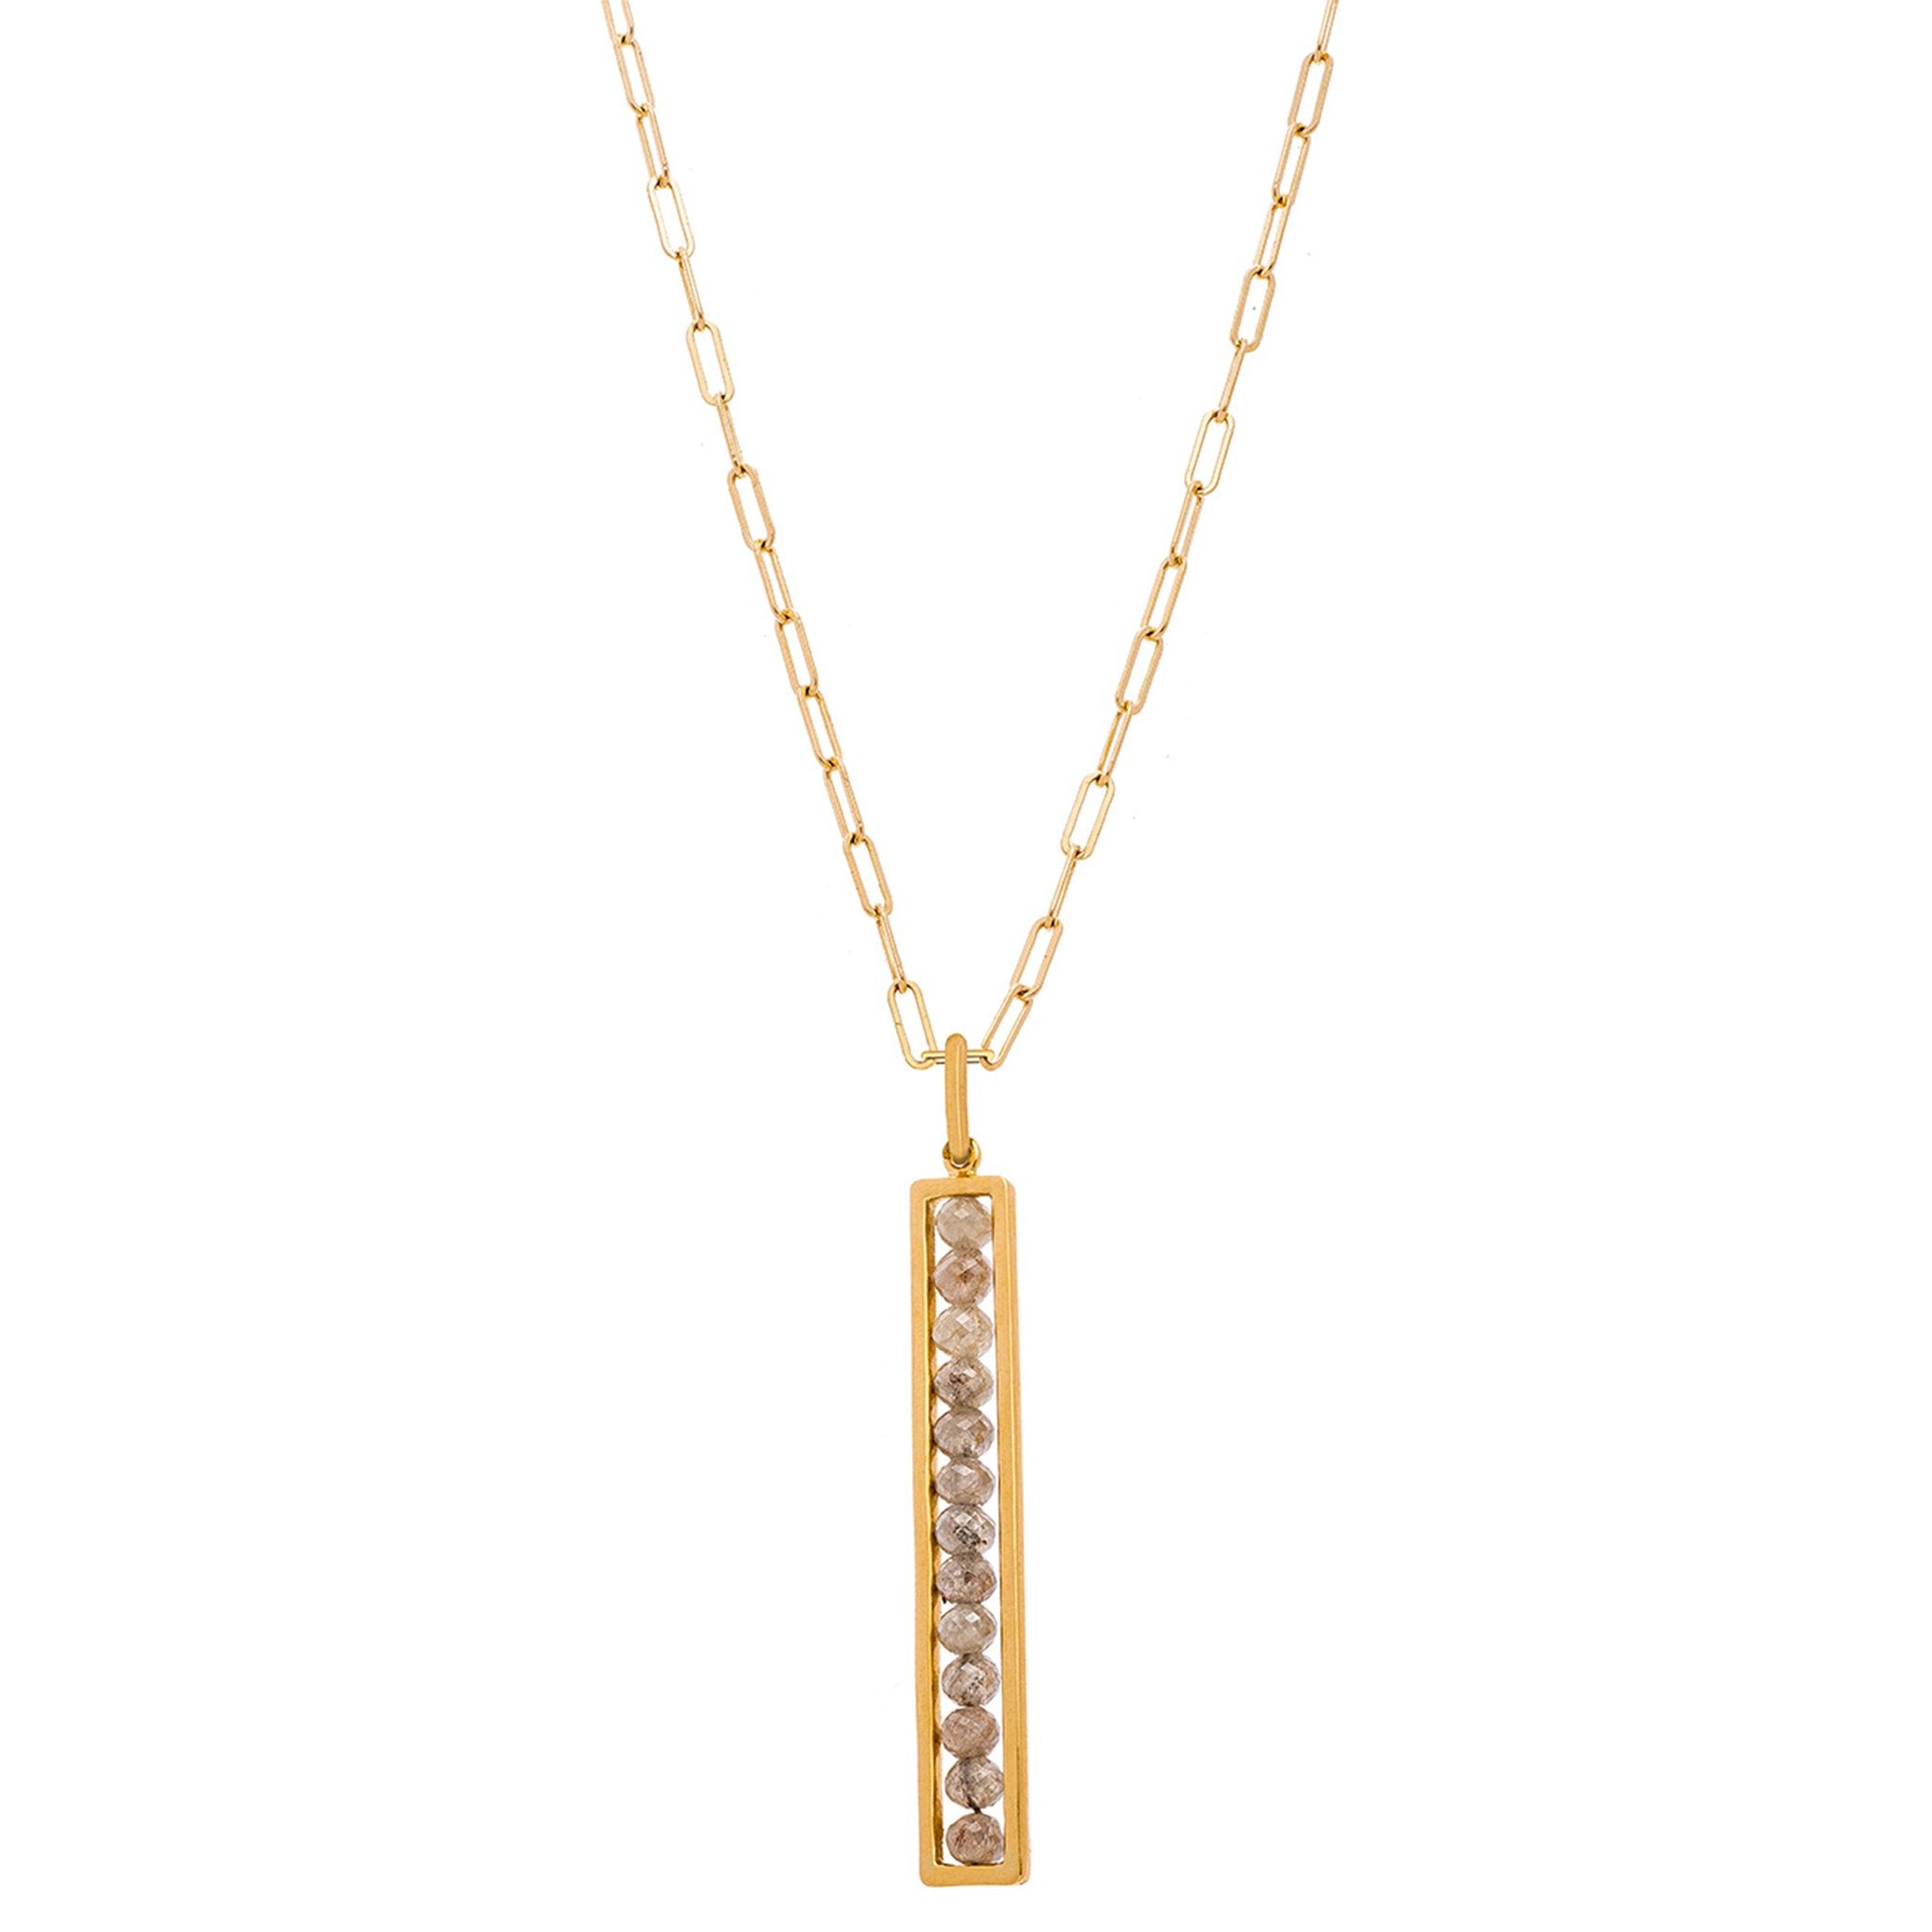 The Leila Necklace